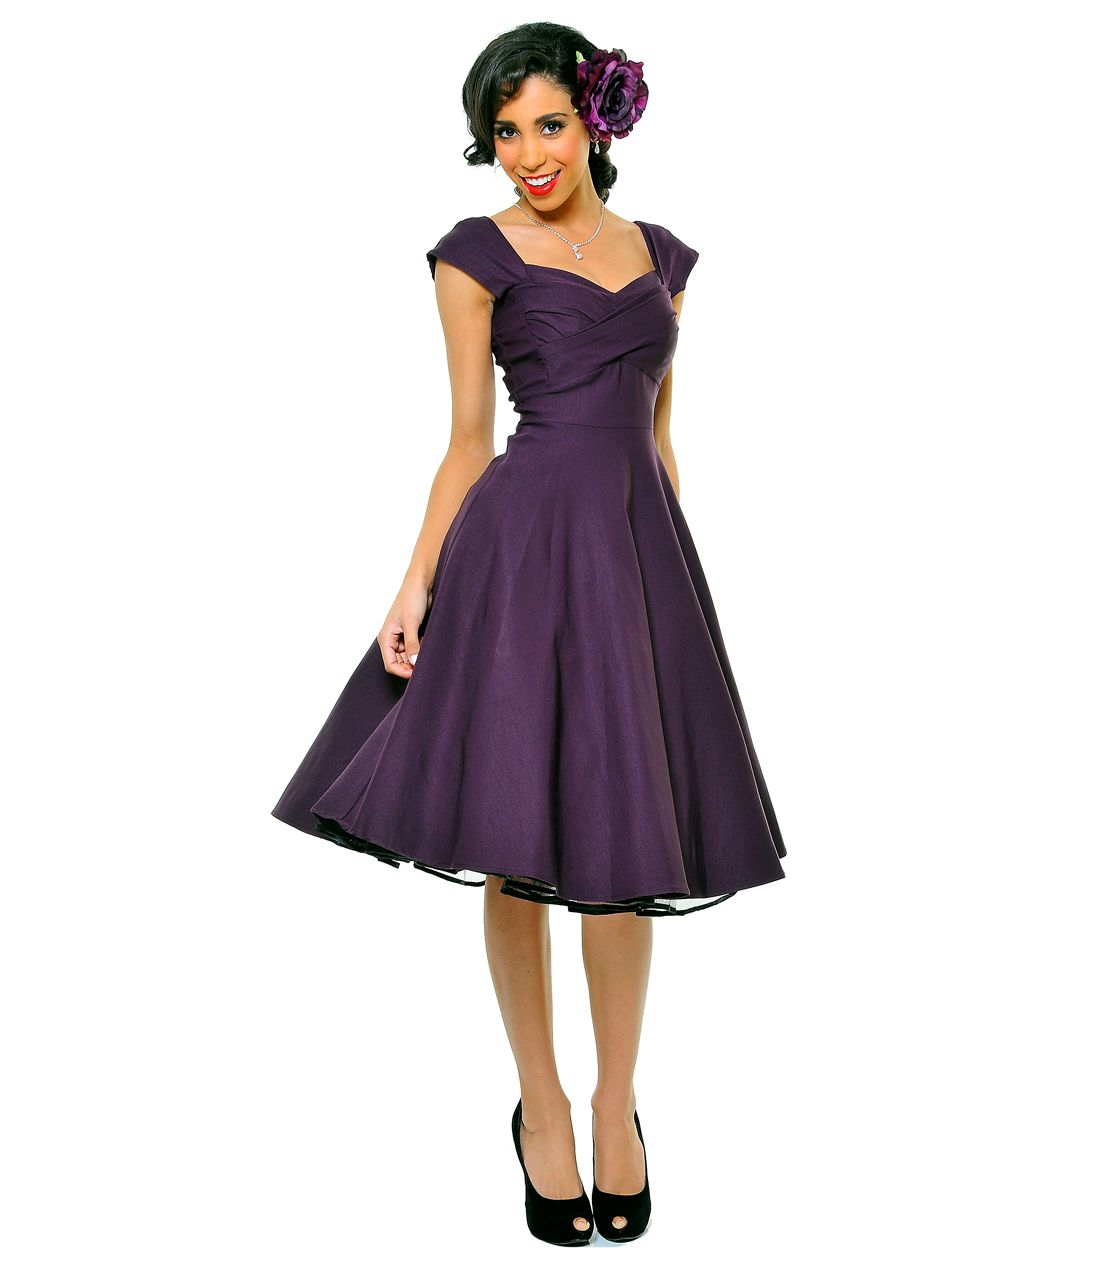 1940 bridesmaidvdresses | BEST SELLER! STOP STARING! MAD MEN Eggplant Pleated Bodice Cap Sleeve ...